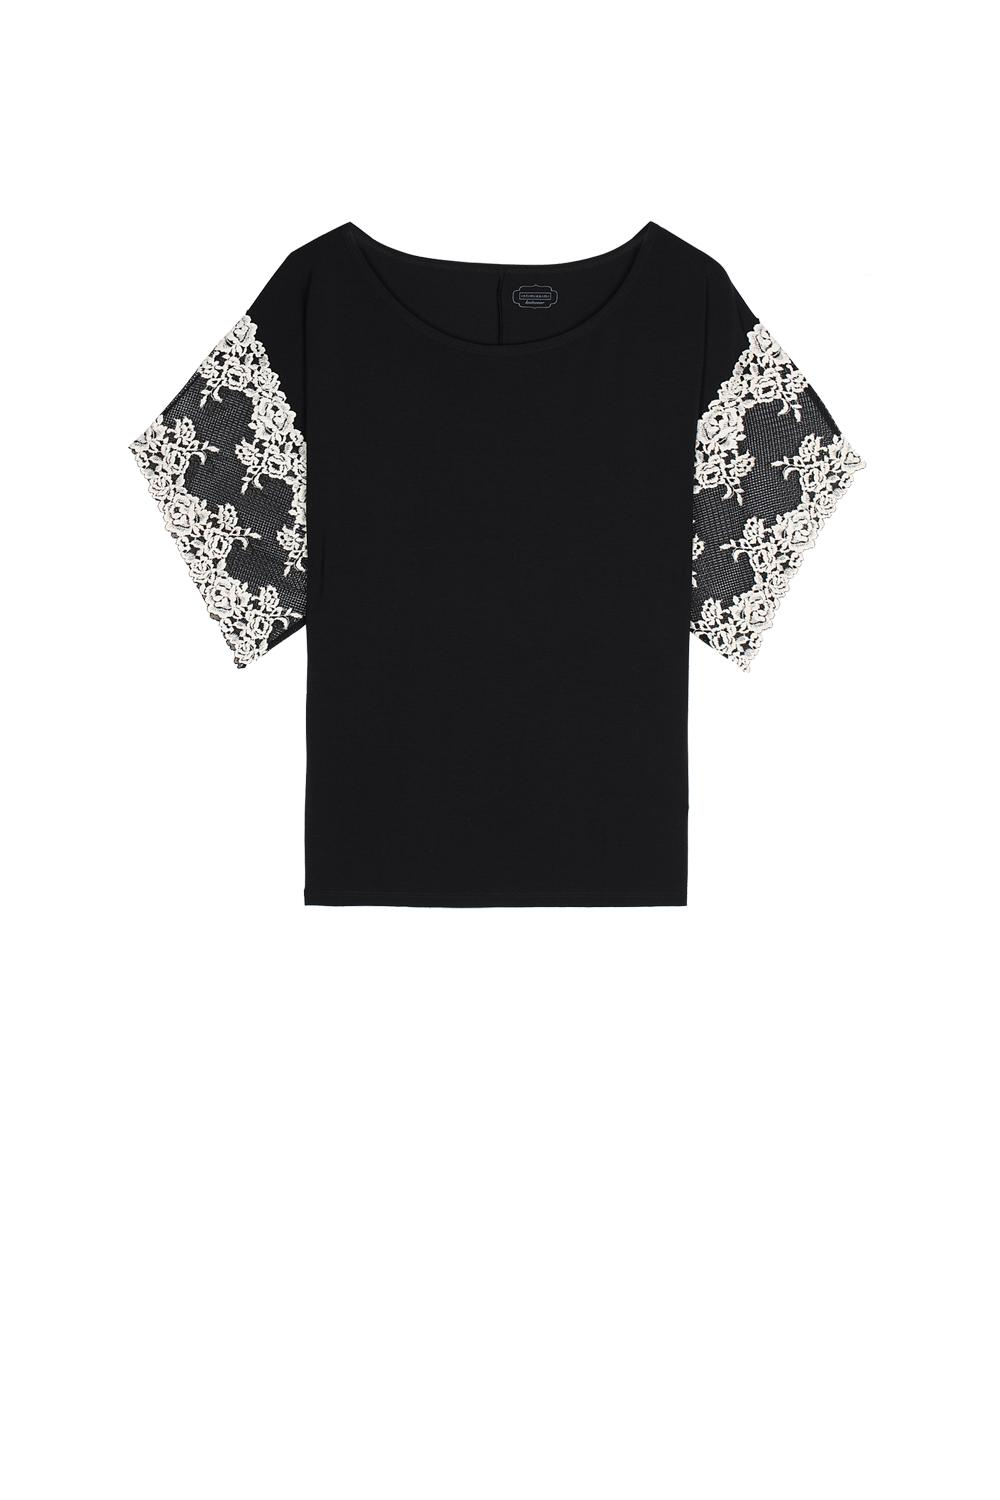 Pretty Flowers Short-Sleeve Top in Modal and Lace